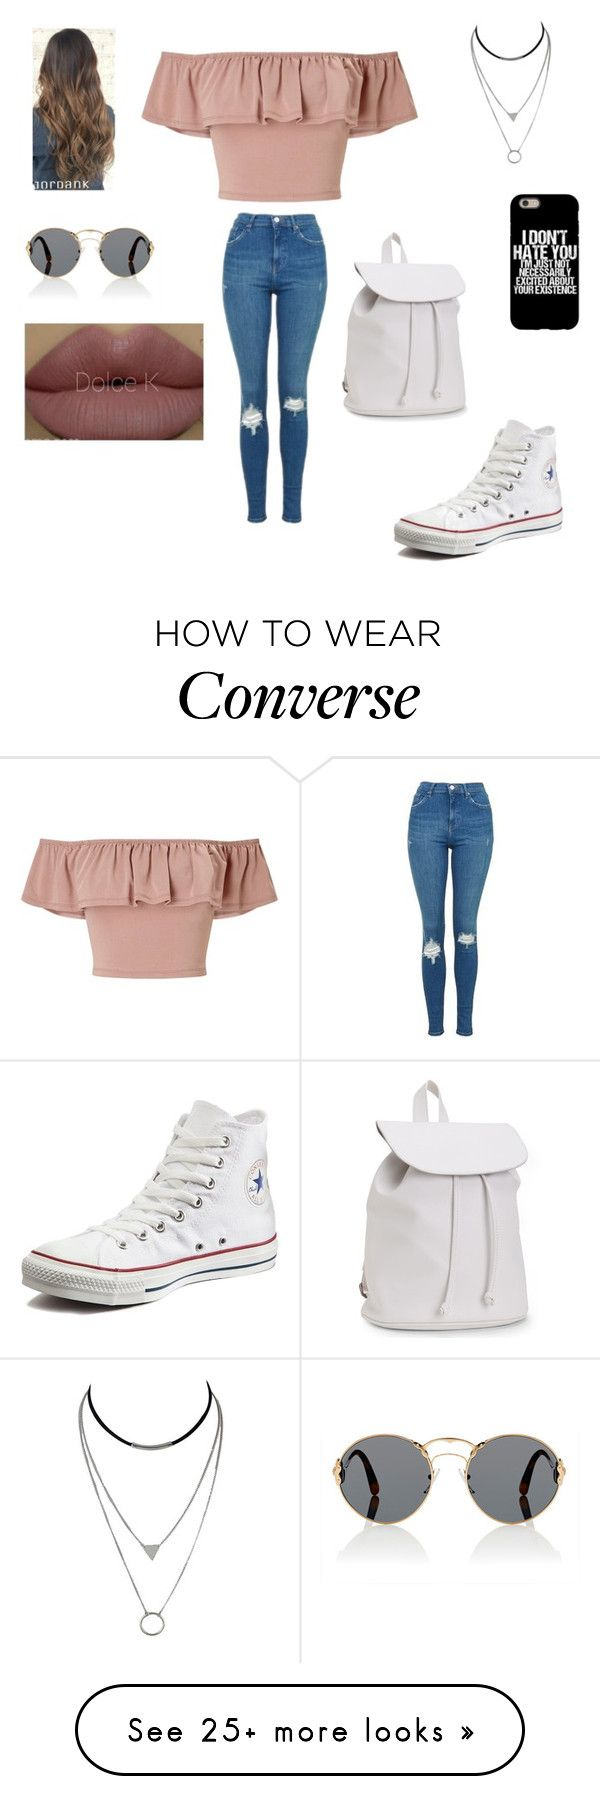 """Senza titolo #1083"" by charlottehora on Polyvore featuring Miss Selfridge, Topshop, Converse, Aéropostale, Prada and Kylie Cosmetics"